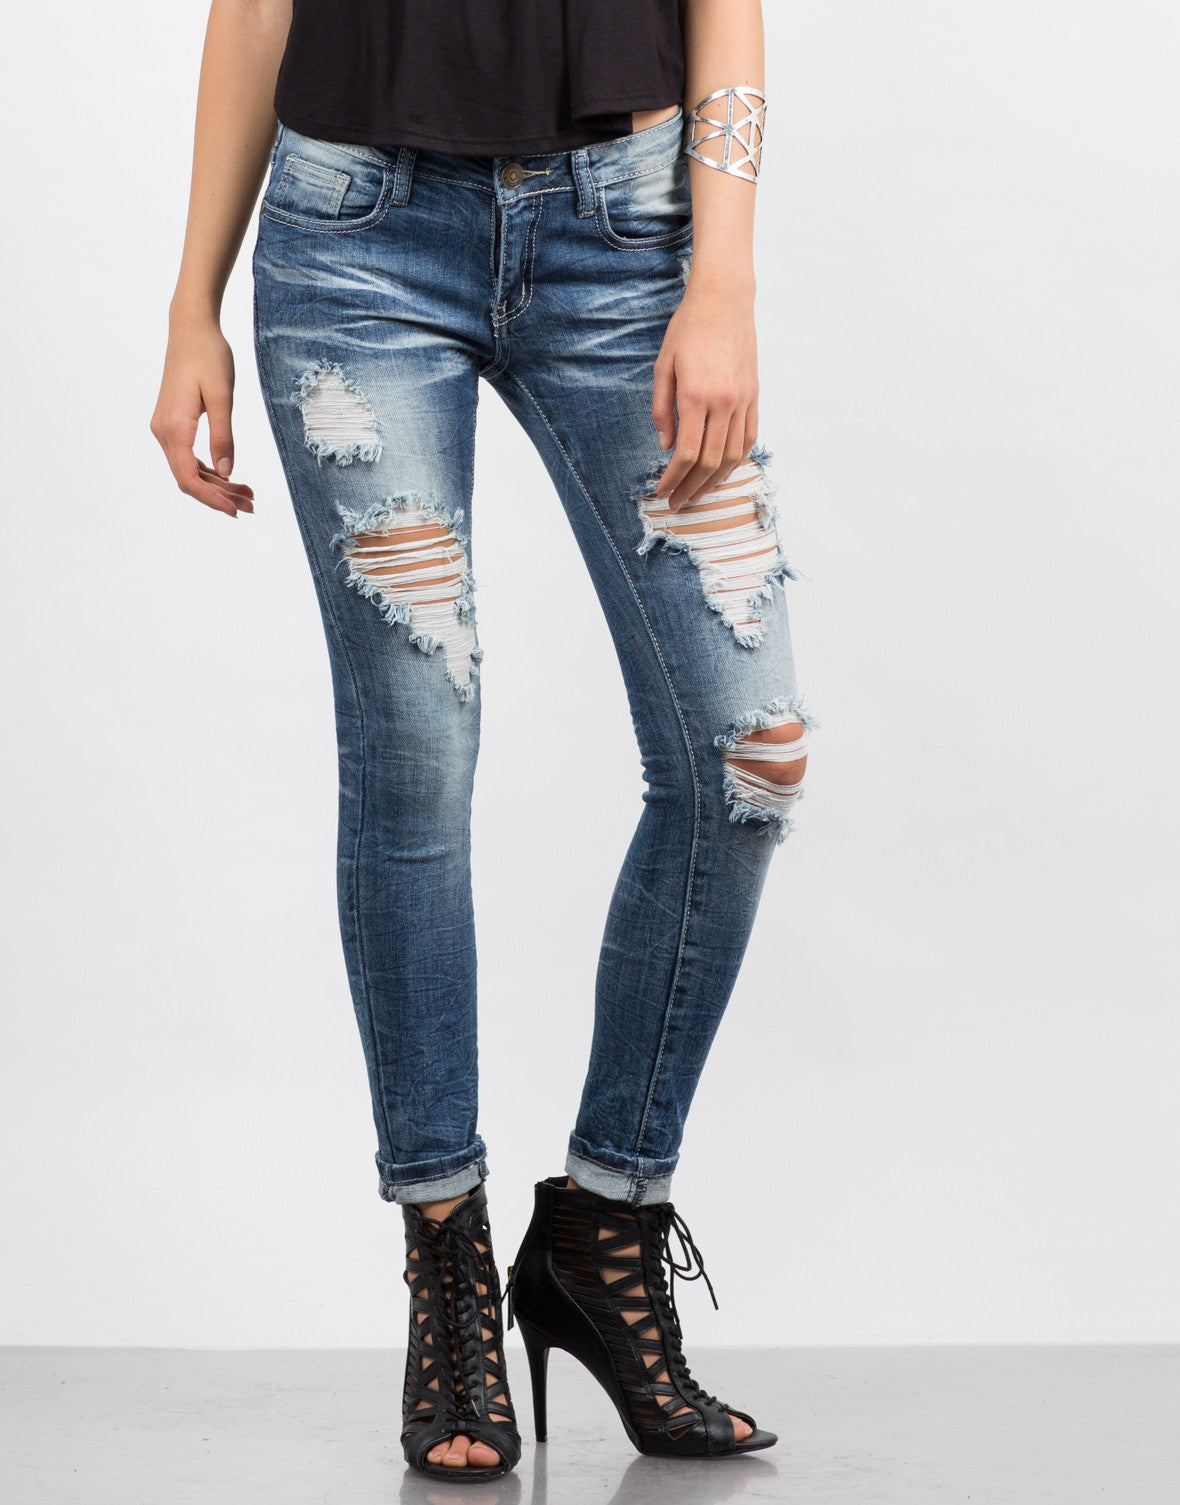 Front View of Faded Distressed Rolled Up Jeans